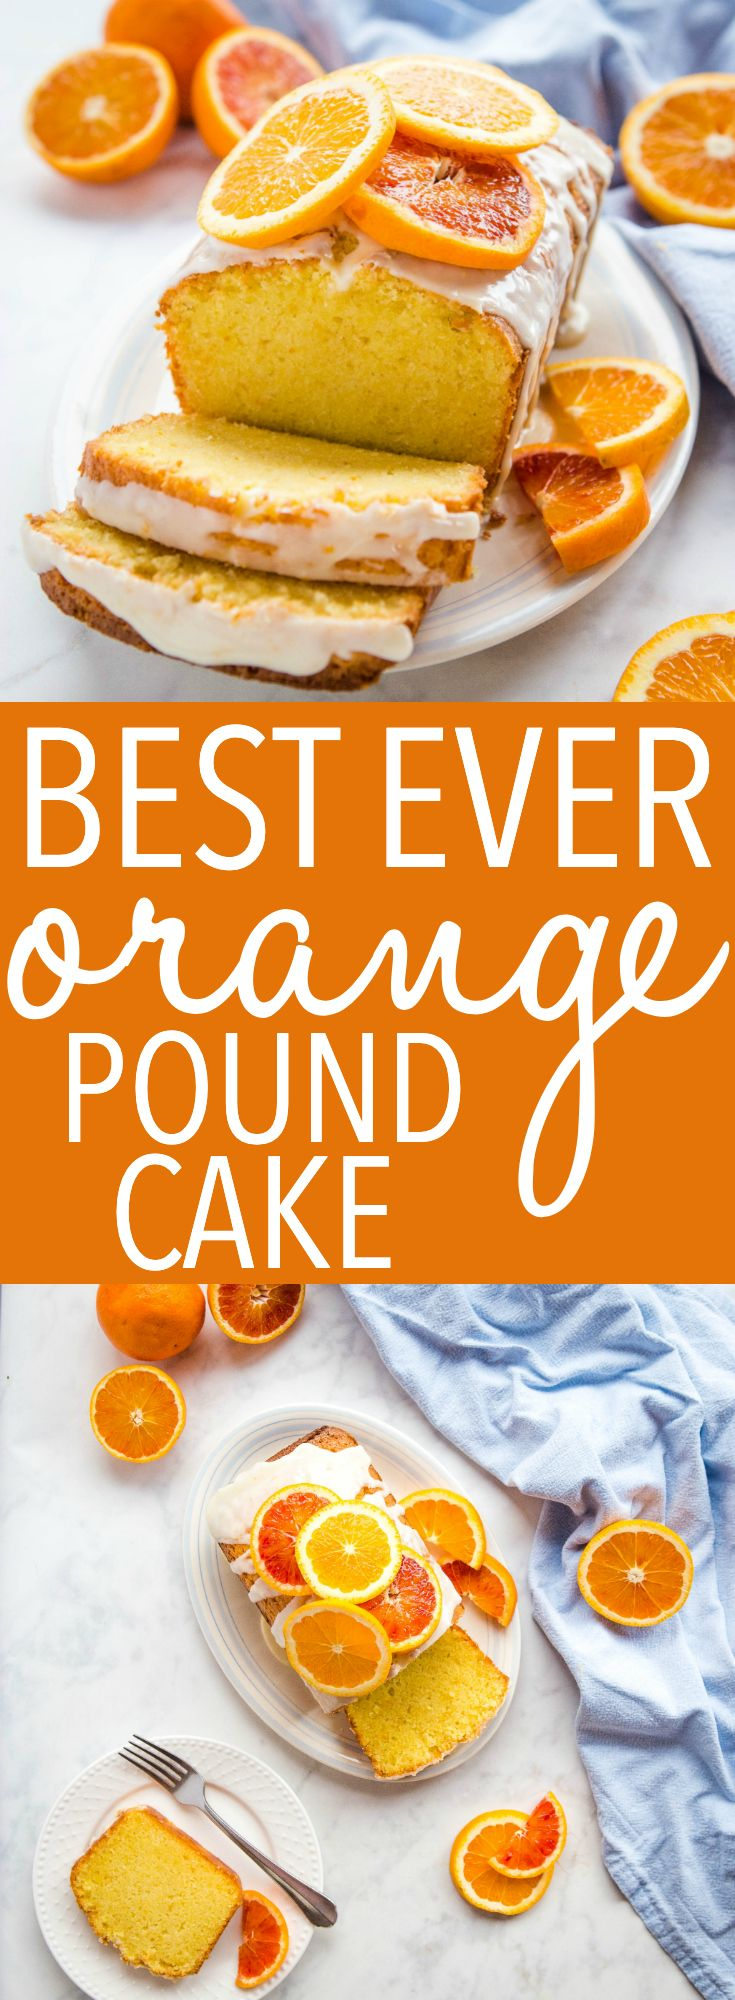 Best Ever Orange Pound Cake with Citrus Glaze - The Busy Baker